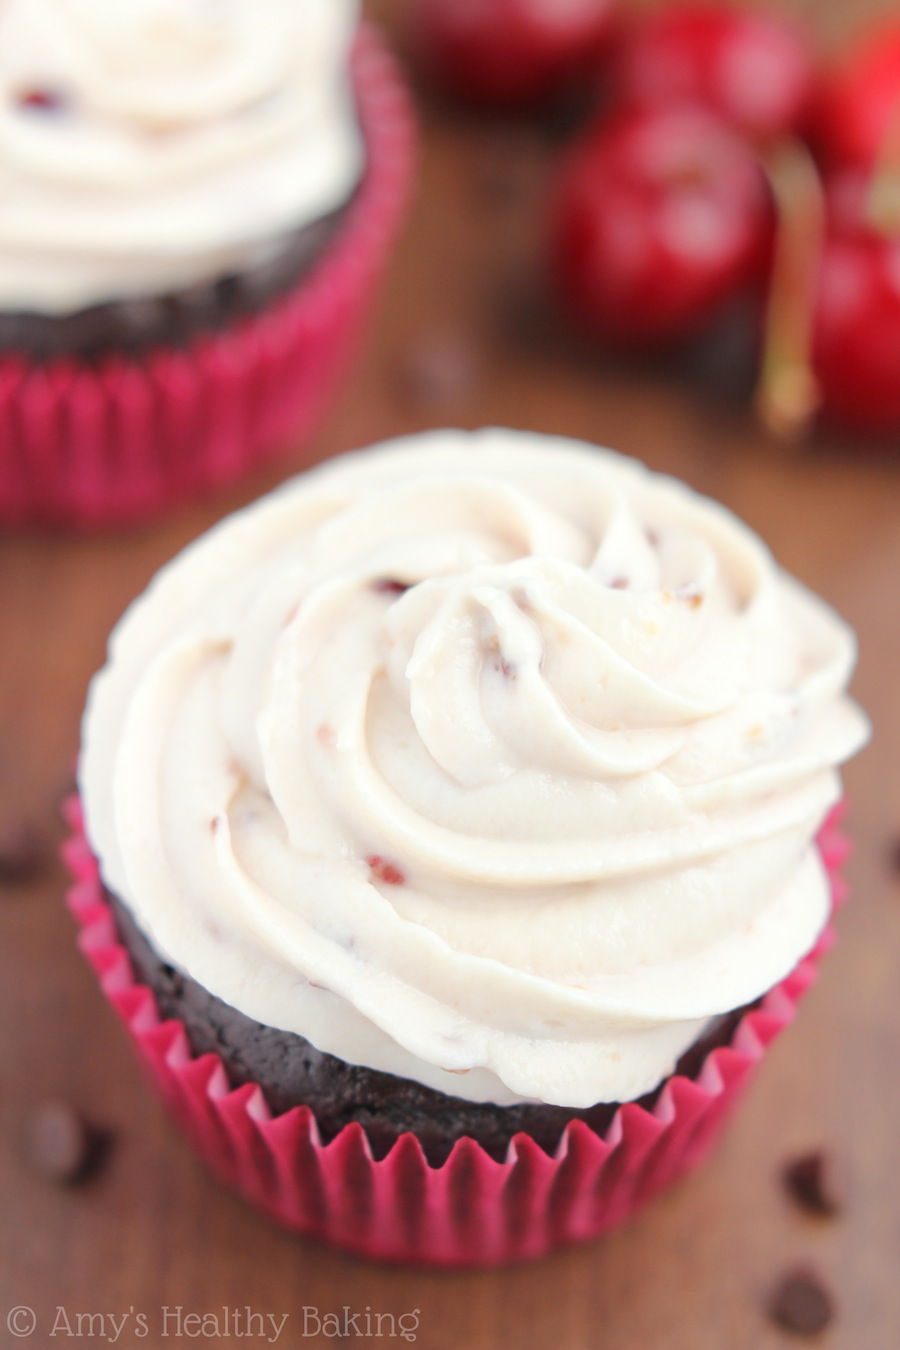 Chocolate Coke Cupcakes with Cherry Vanilla Frosting -- my new favorite dessert recipe! And they're only 150 calories each!